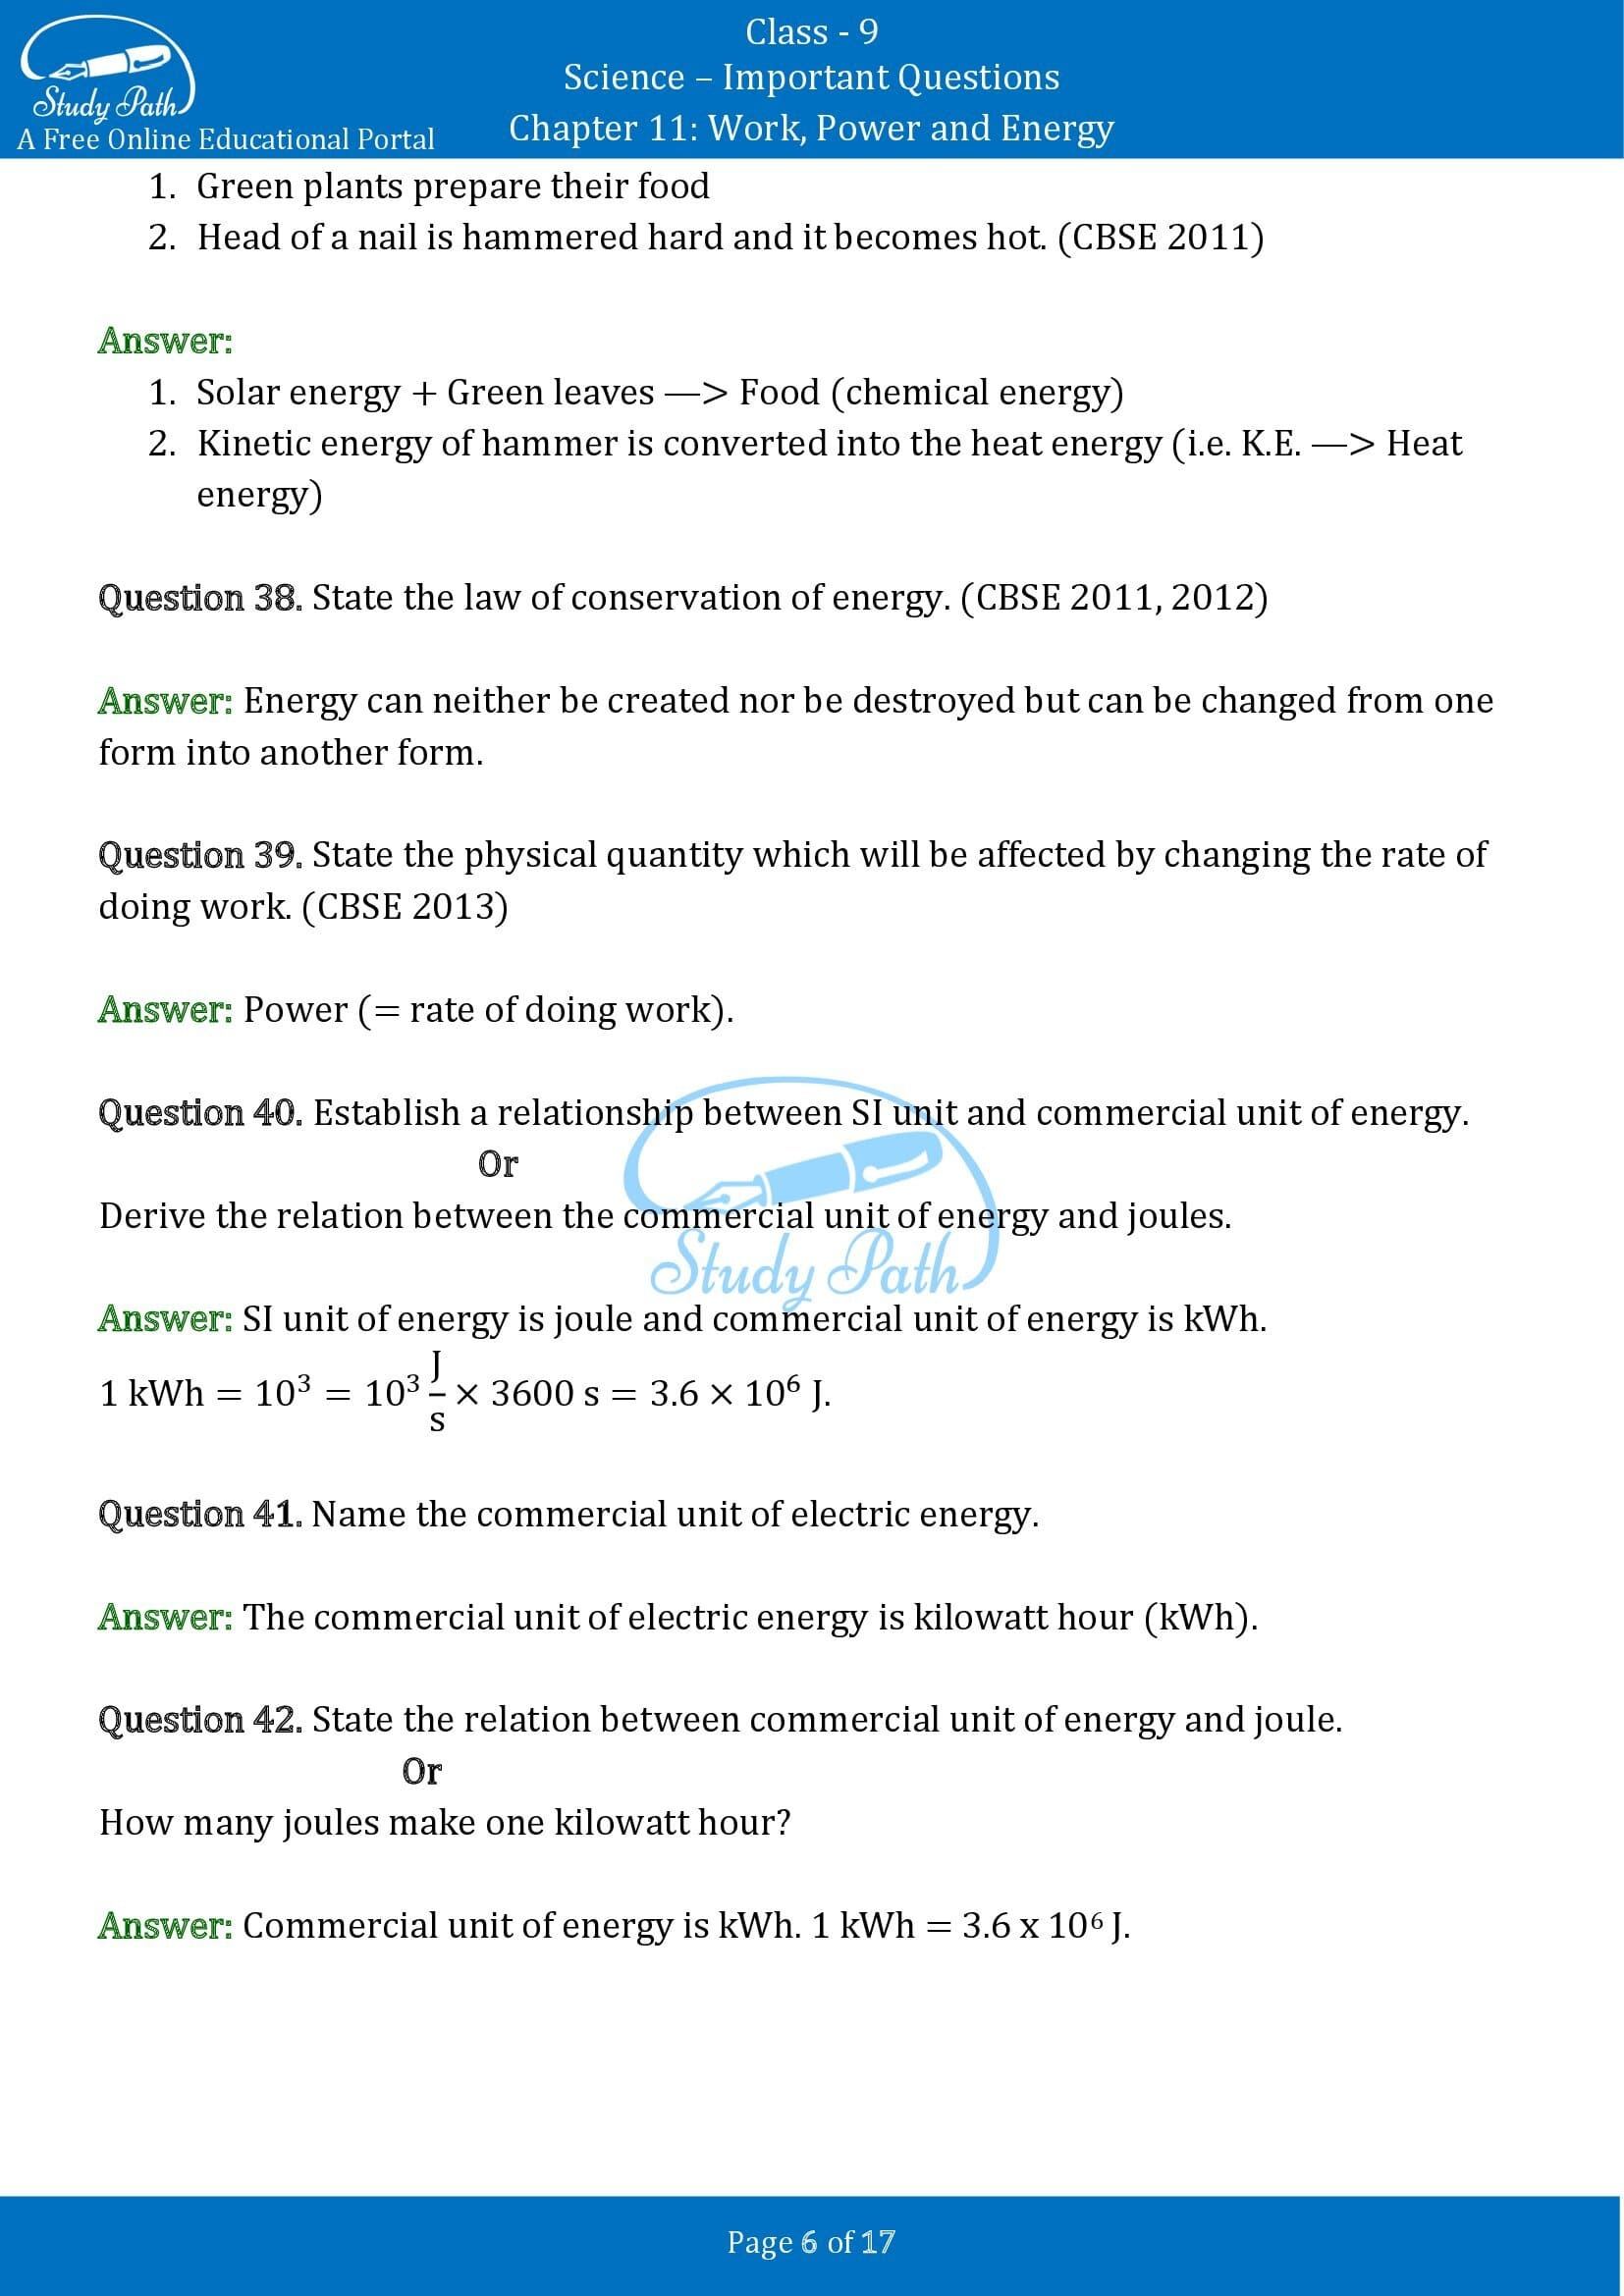 Important Questions for Class 9 Science Chapter 11 Work Power and Energy 00006